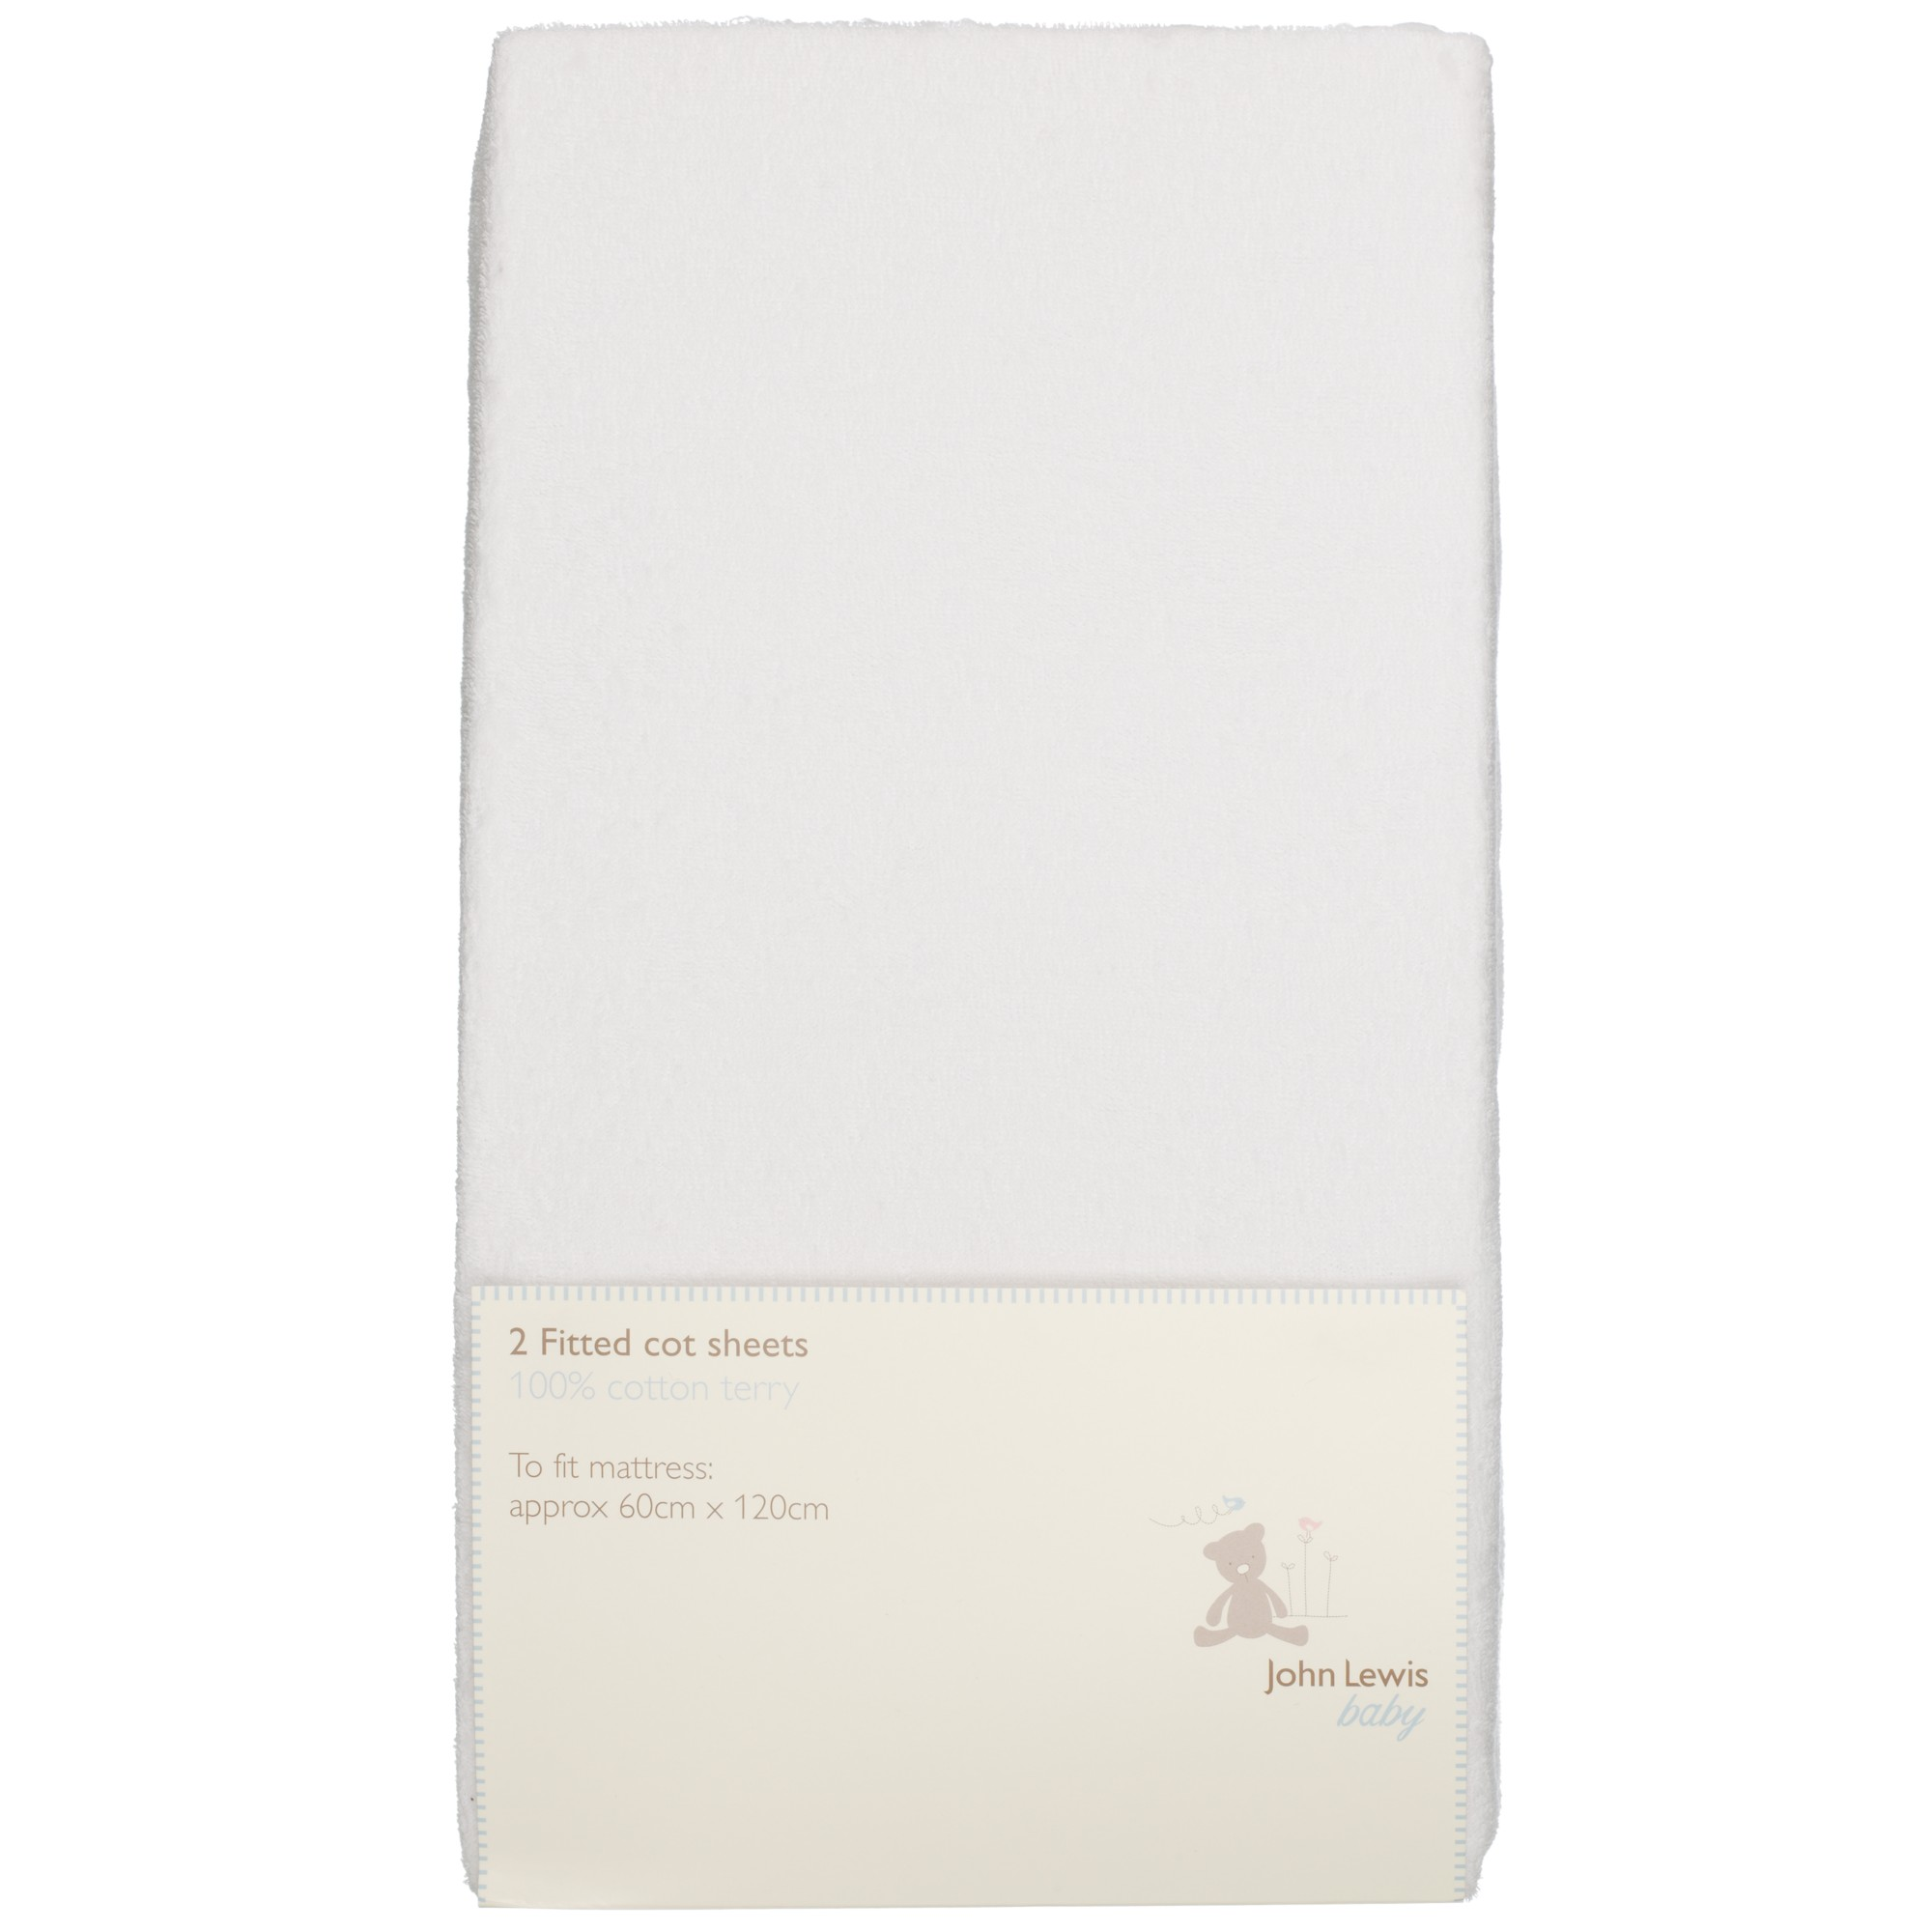 John Lewis Fitted Terry Cot Sheets